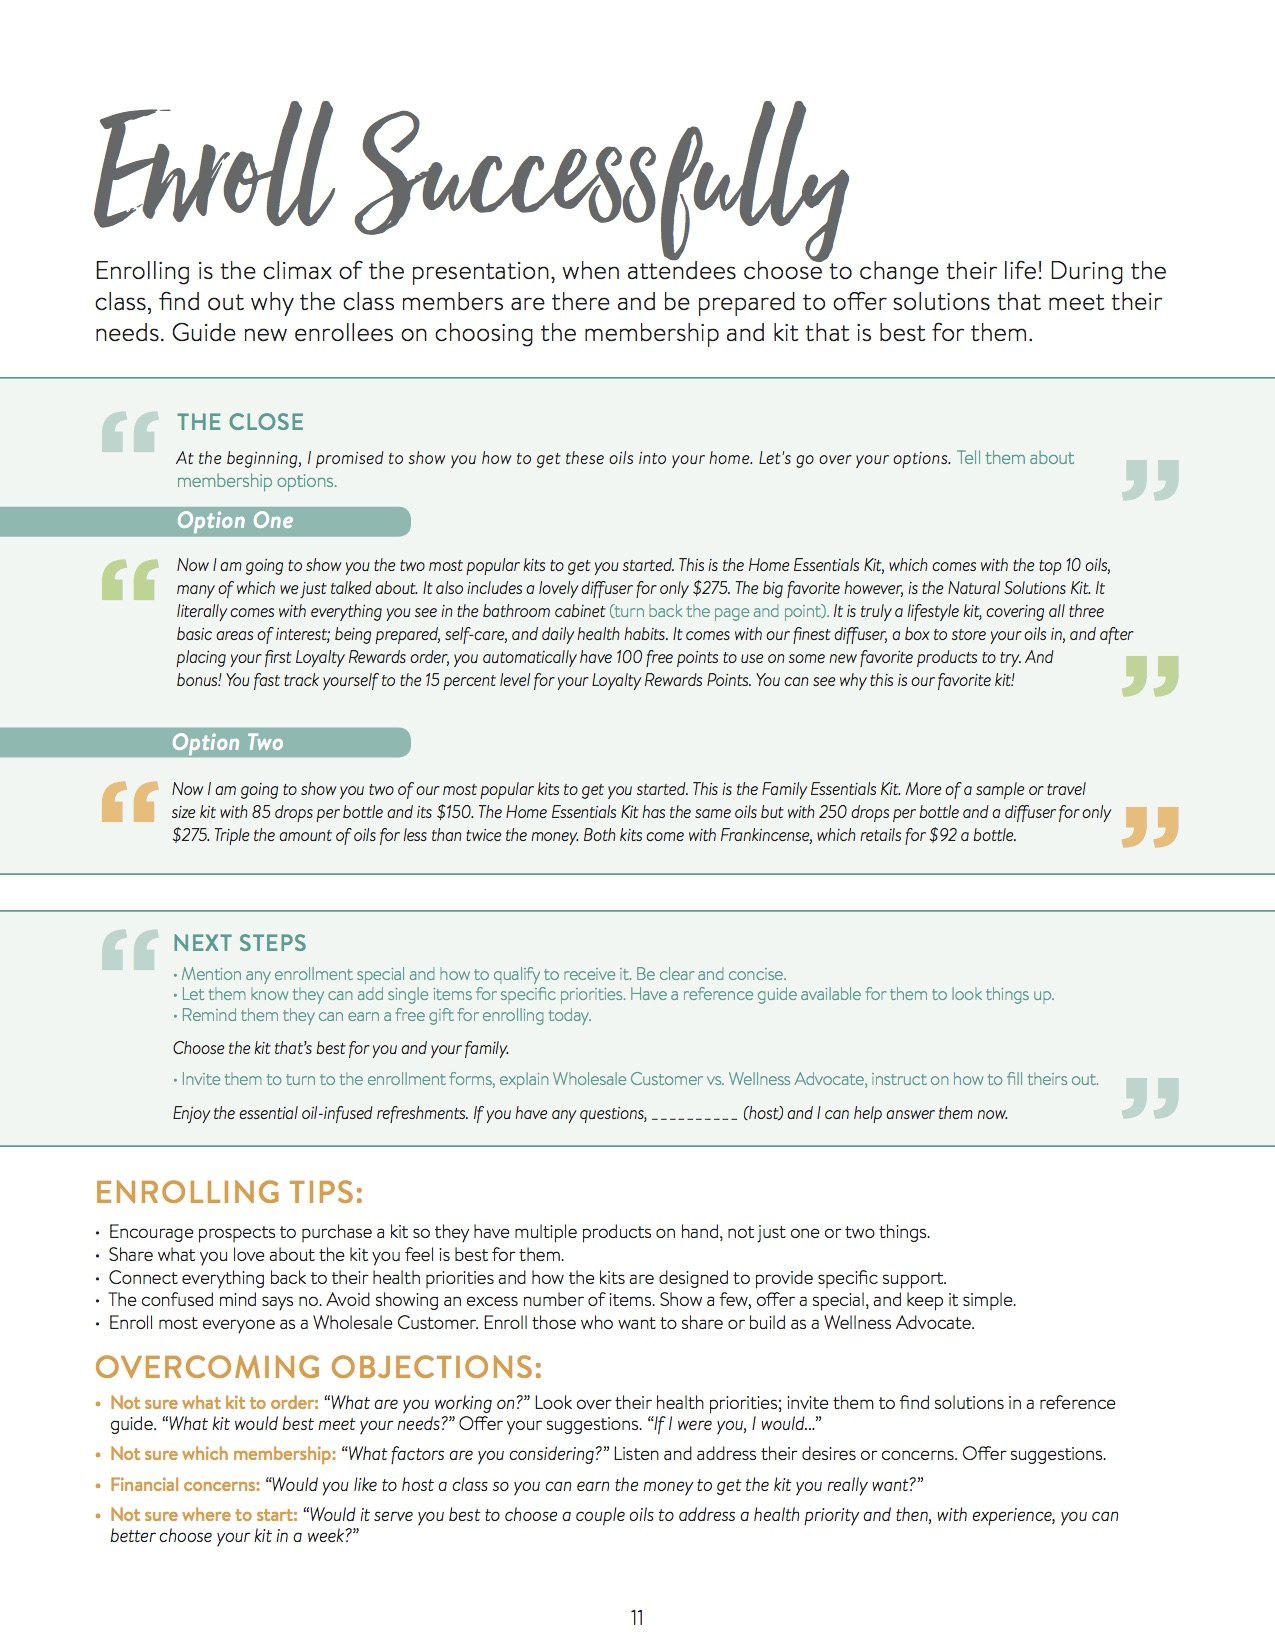 empowered-success-launch-guide 11.jpg